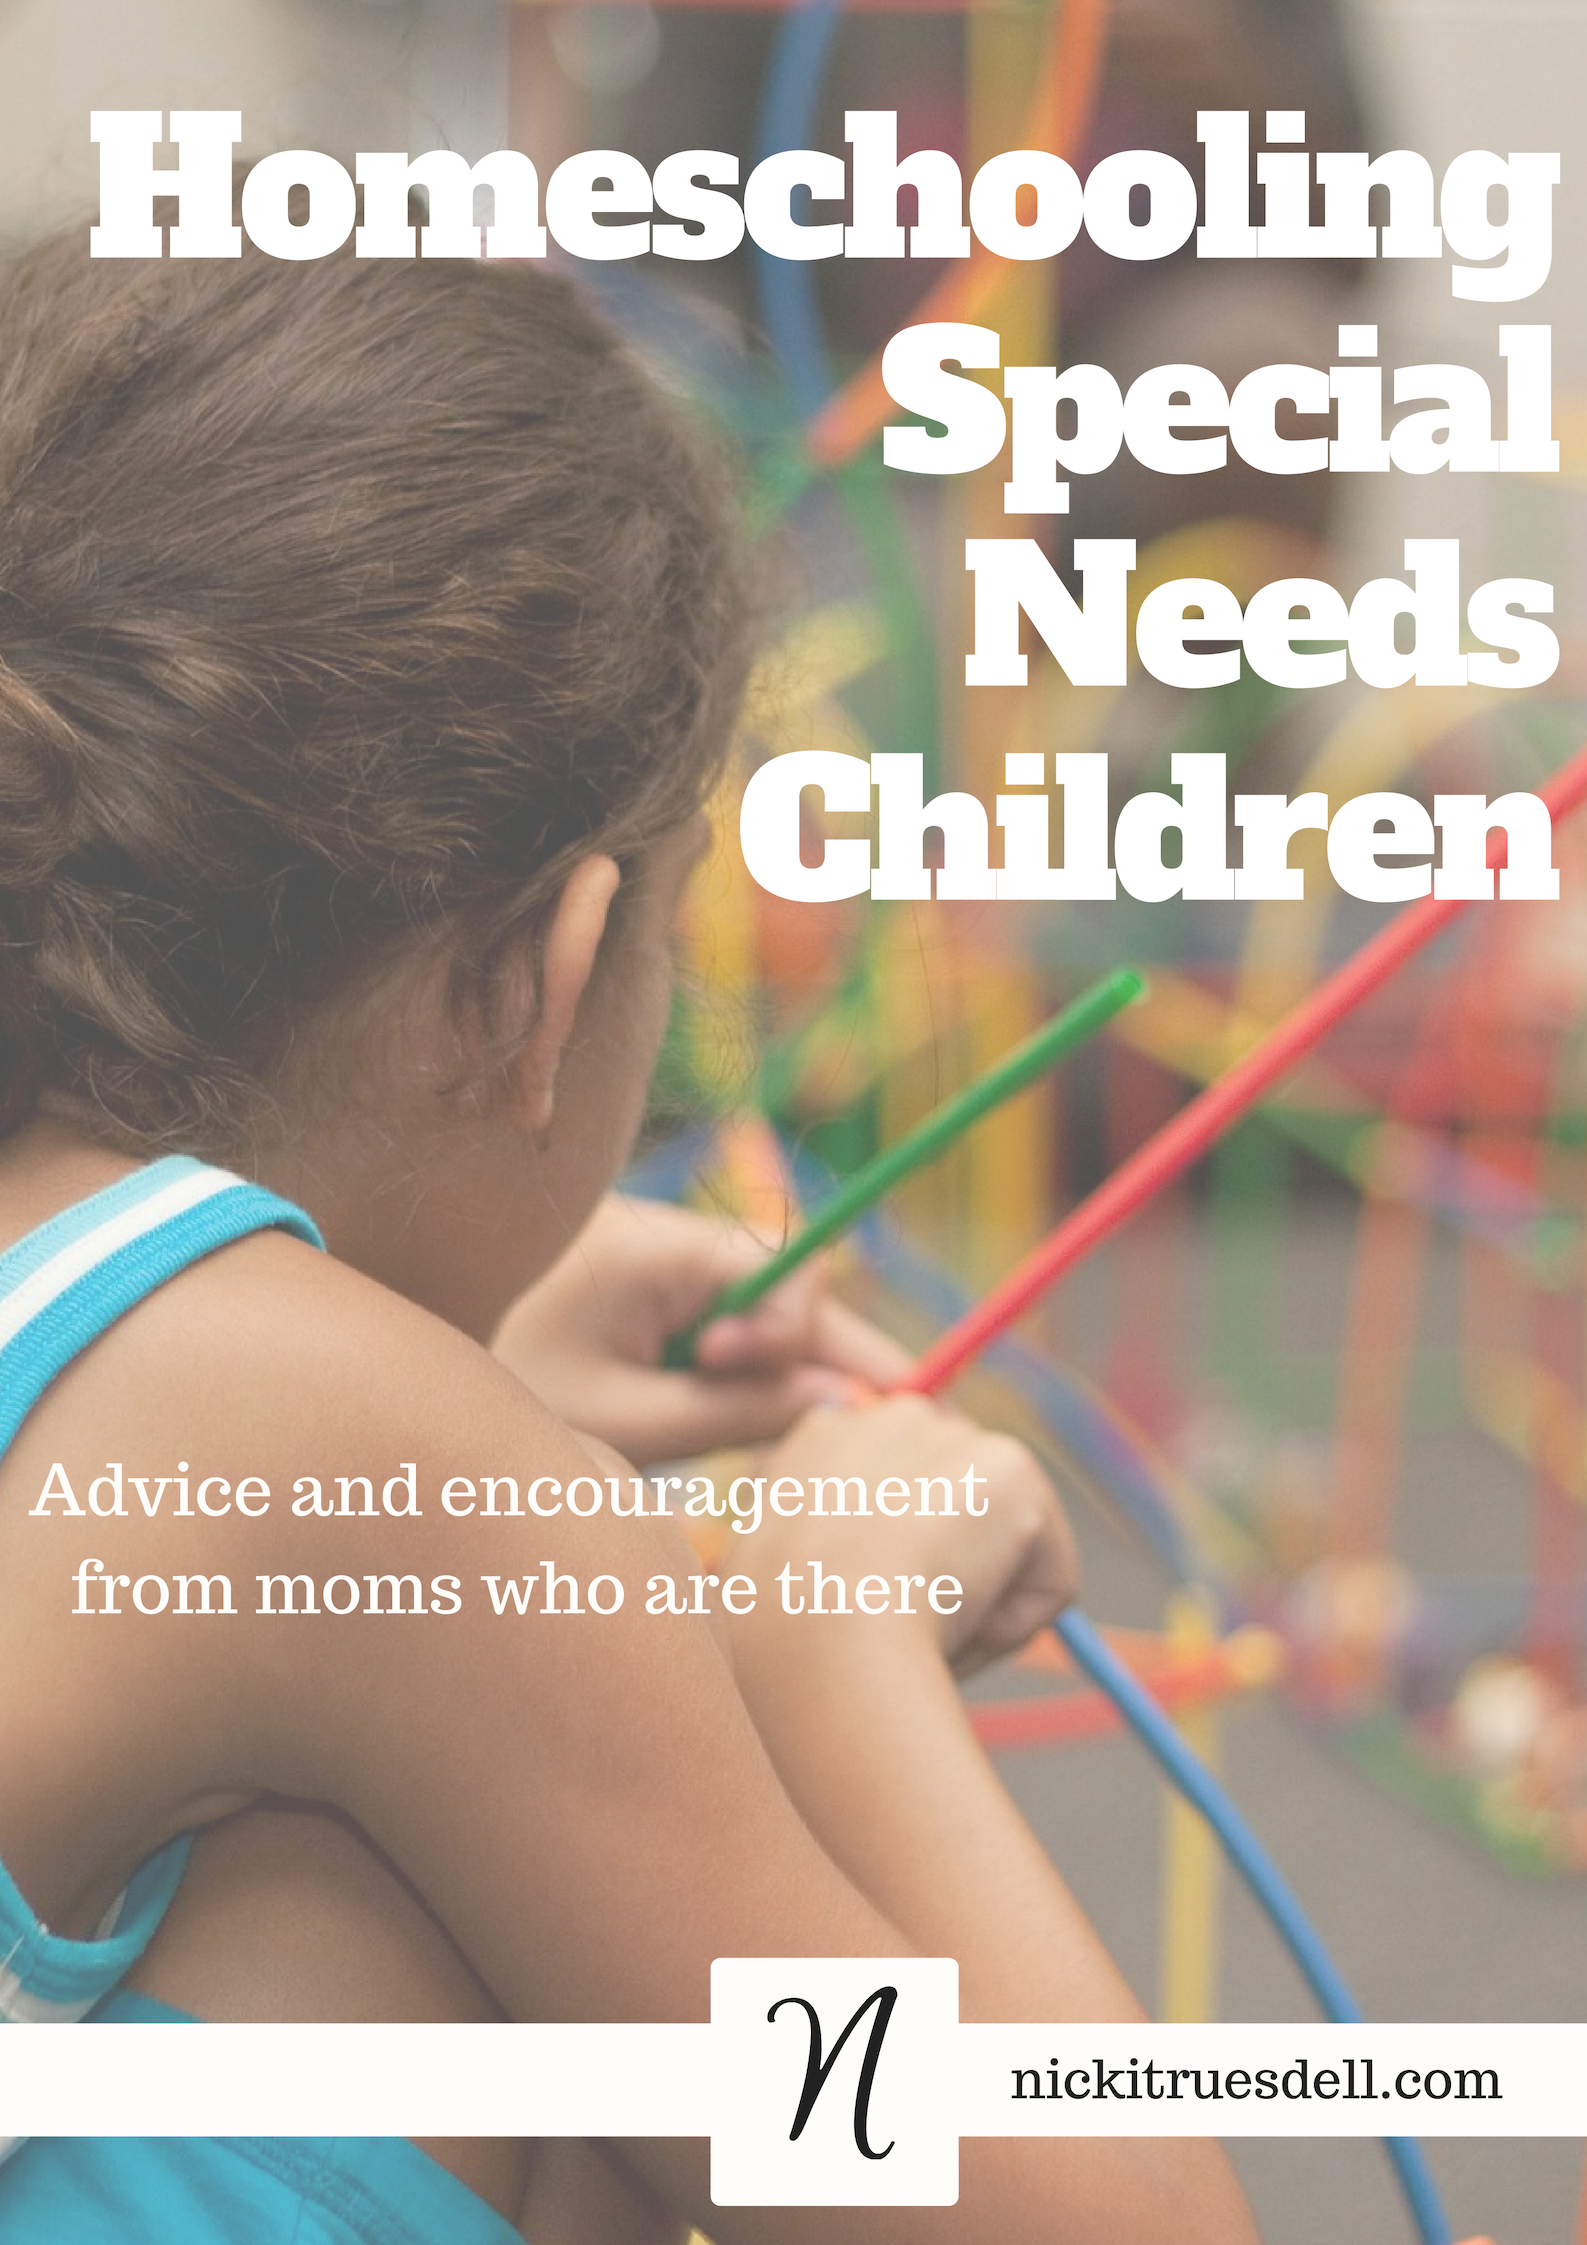 Get inspiration and tips from other moms who are homeschooling special needs children